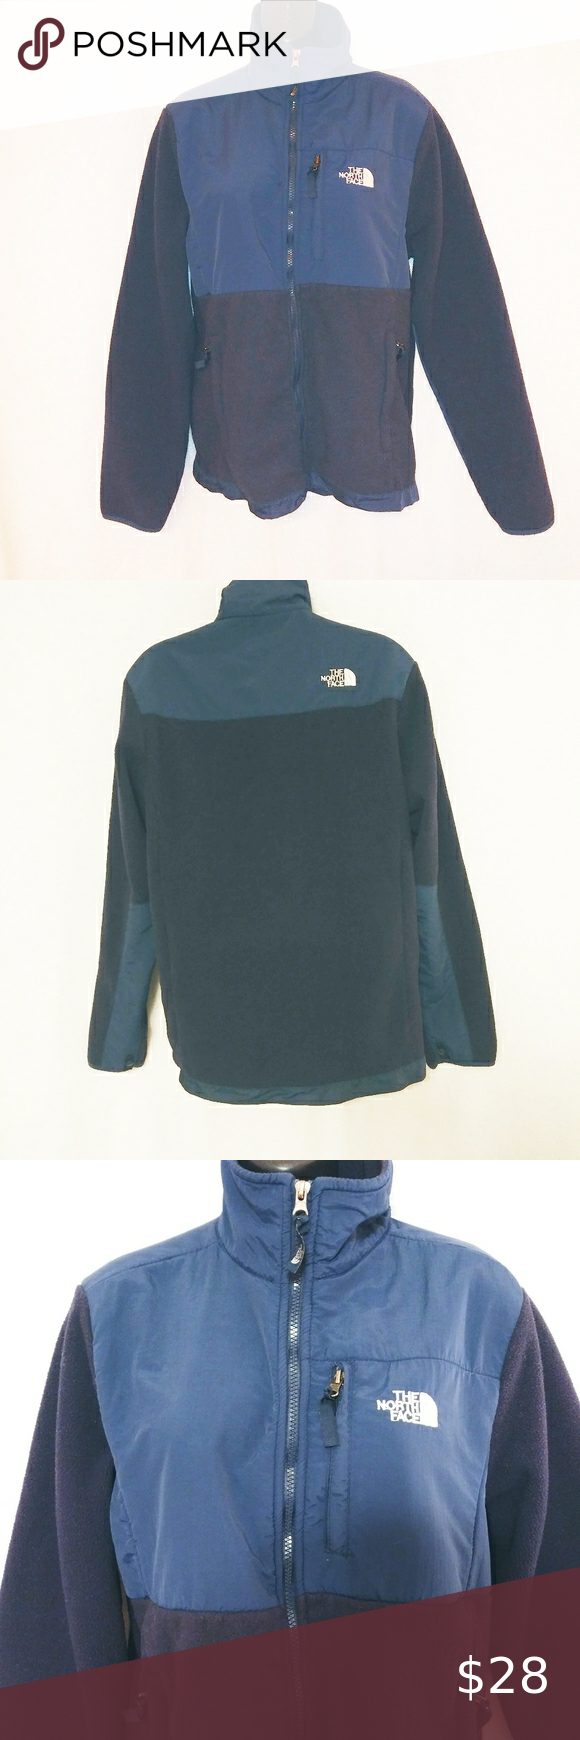 The North Face Large Zip Up Jacket Clothes Design Jackets North Face Jacket [ 1740 x 580 Pixel ]